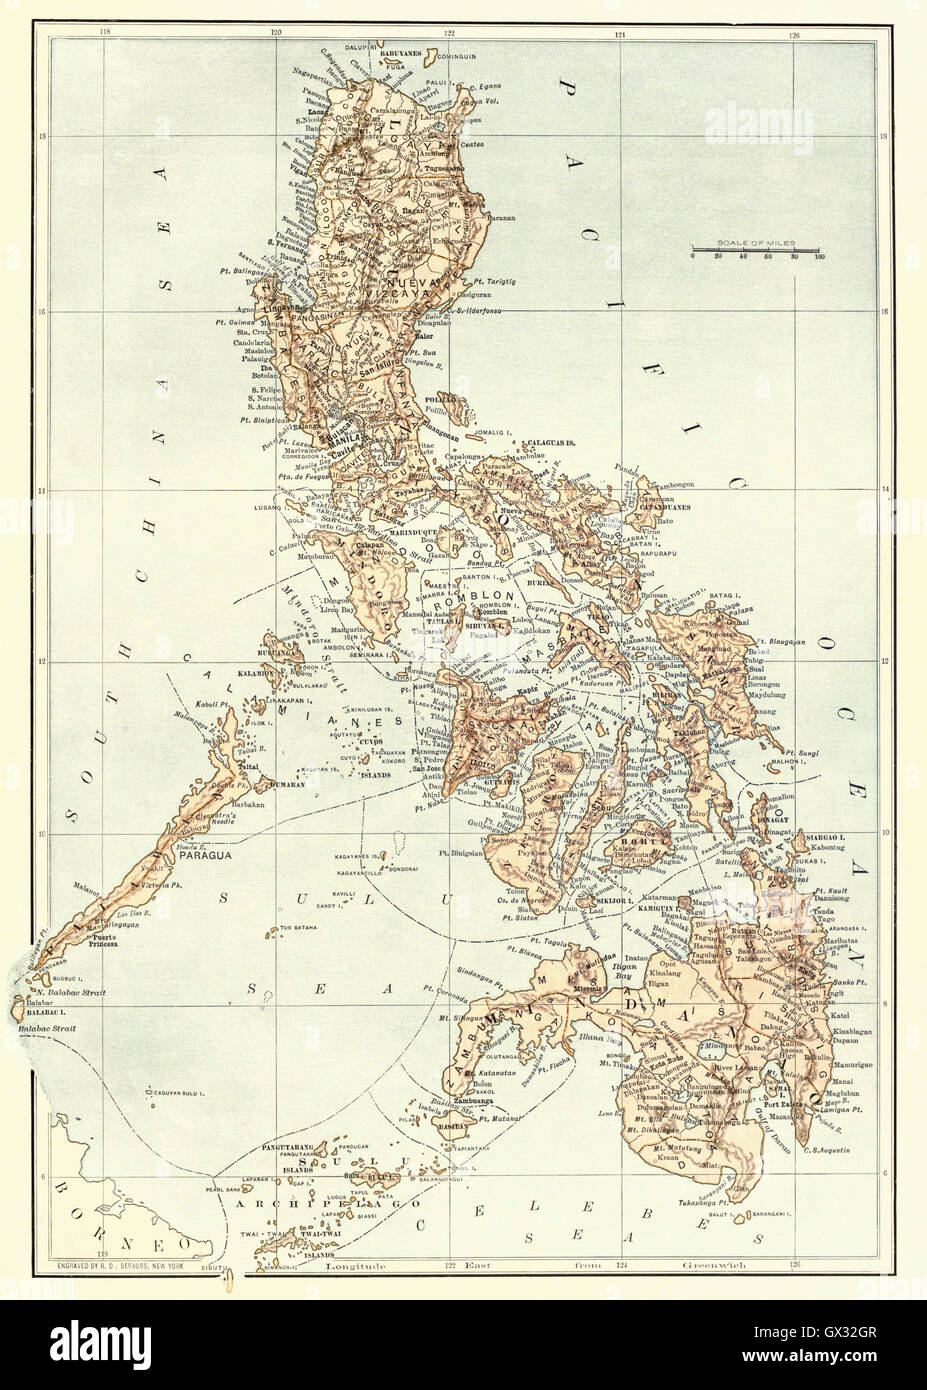 Map of the Philippines at the end of the 19th century. - Stock Image